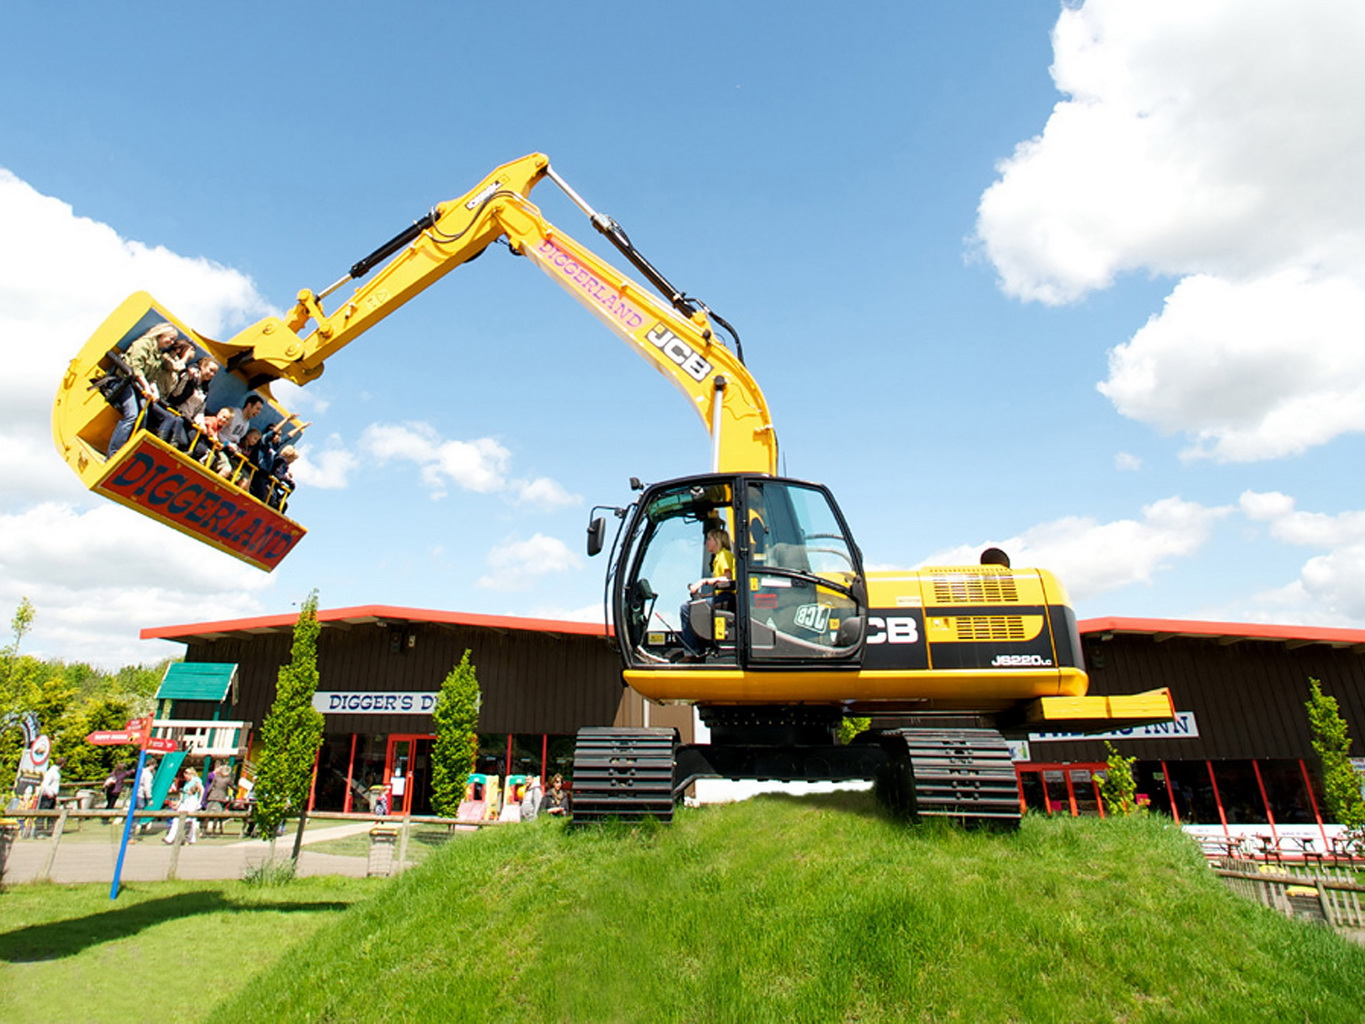 Diggerland USA A Construction Themed Adventure Park Is